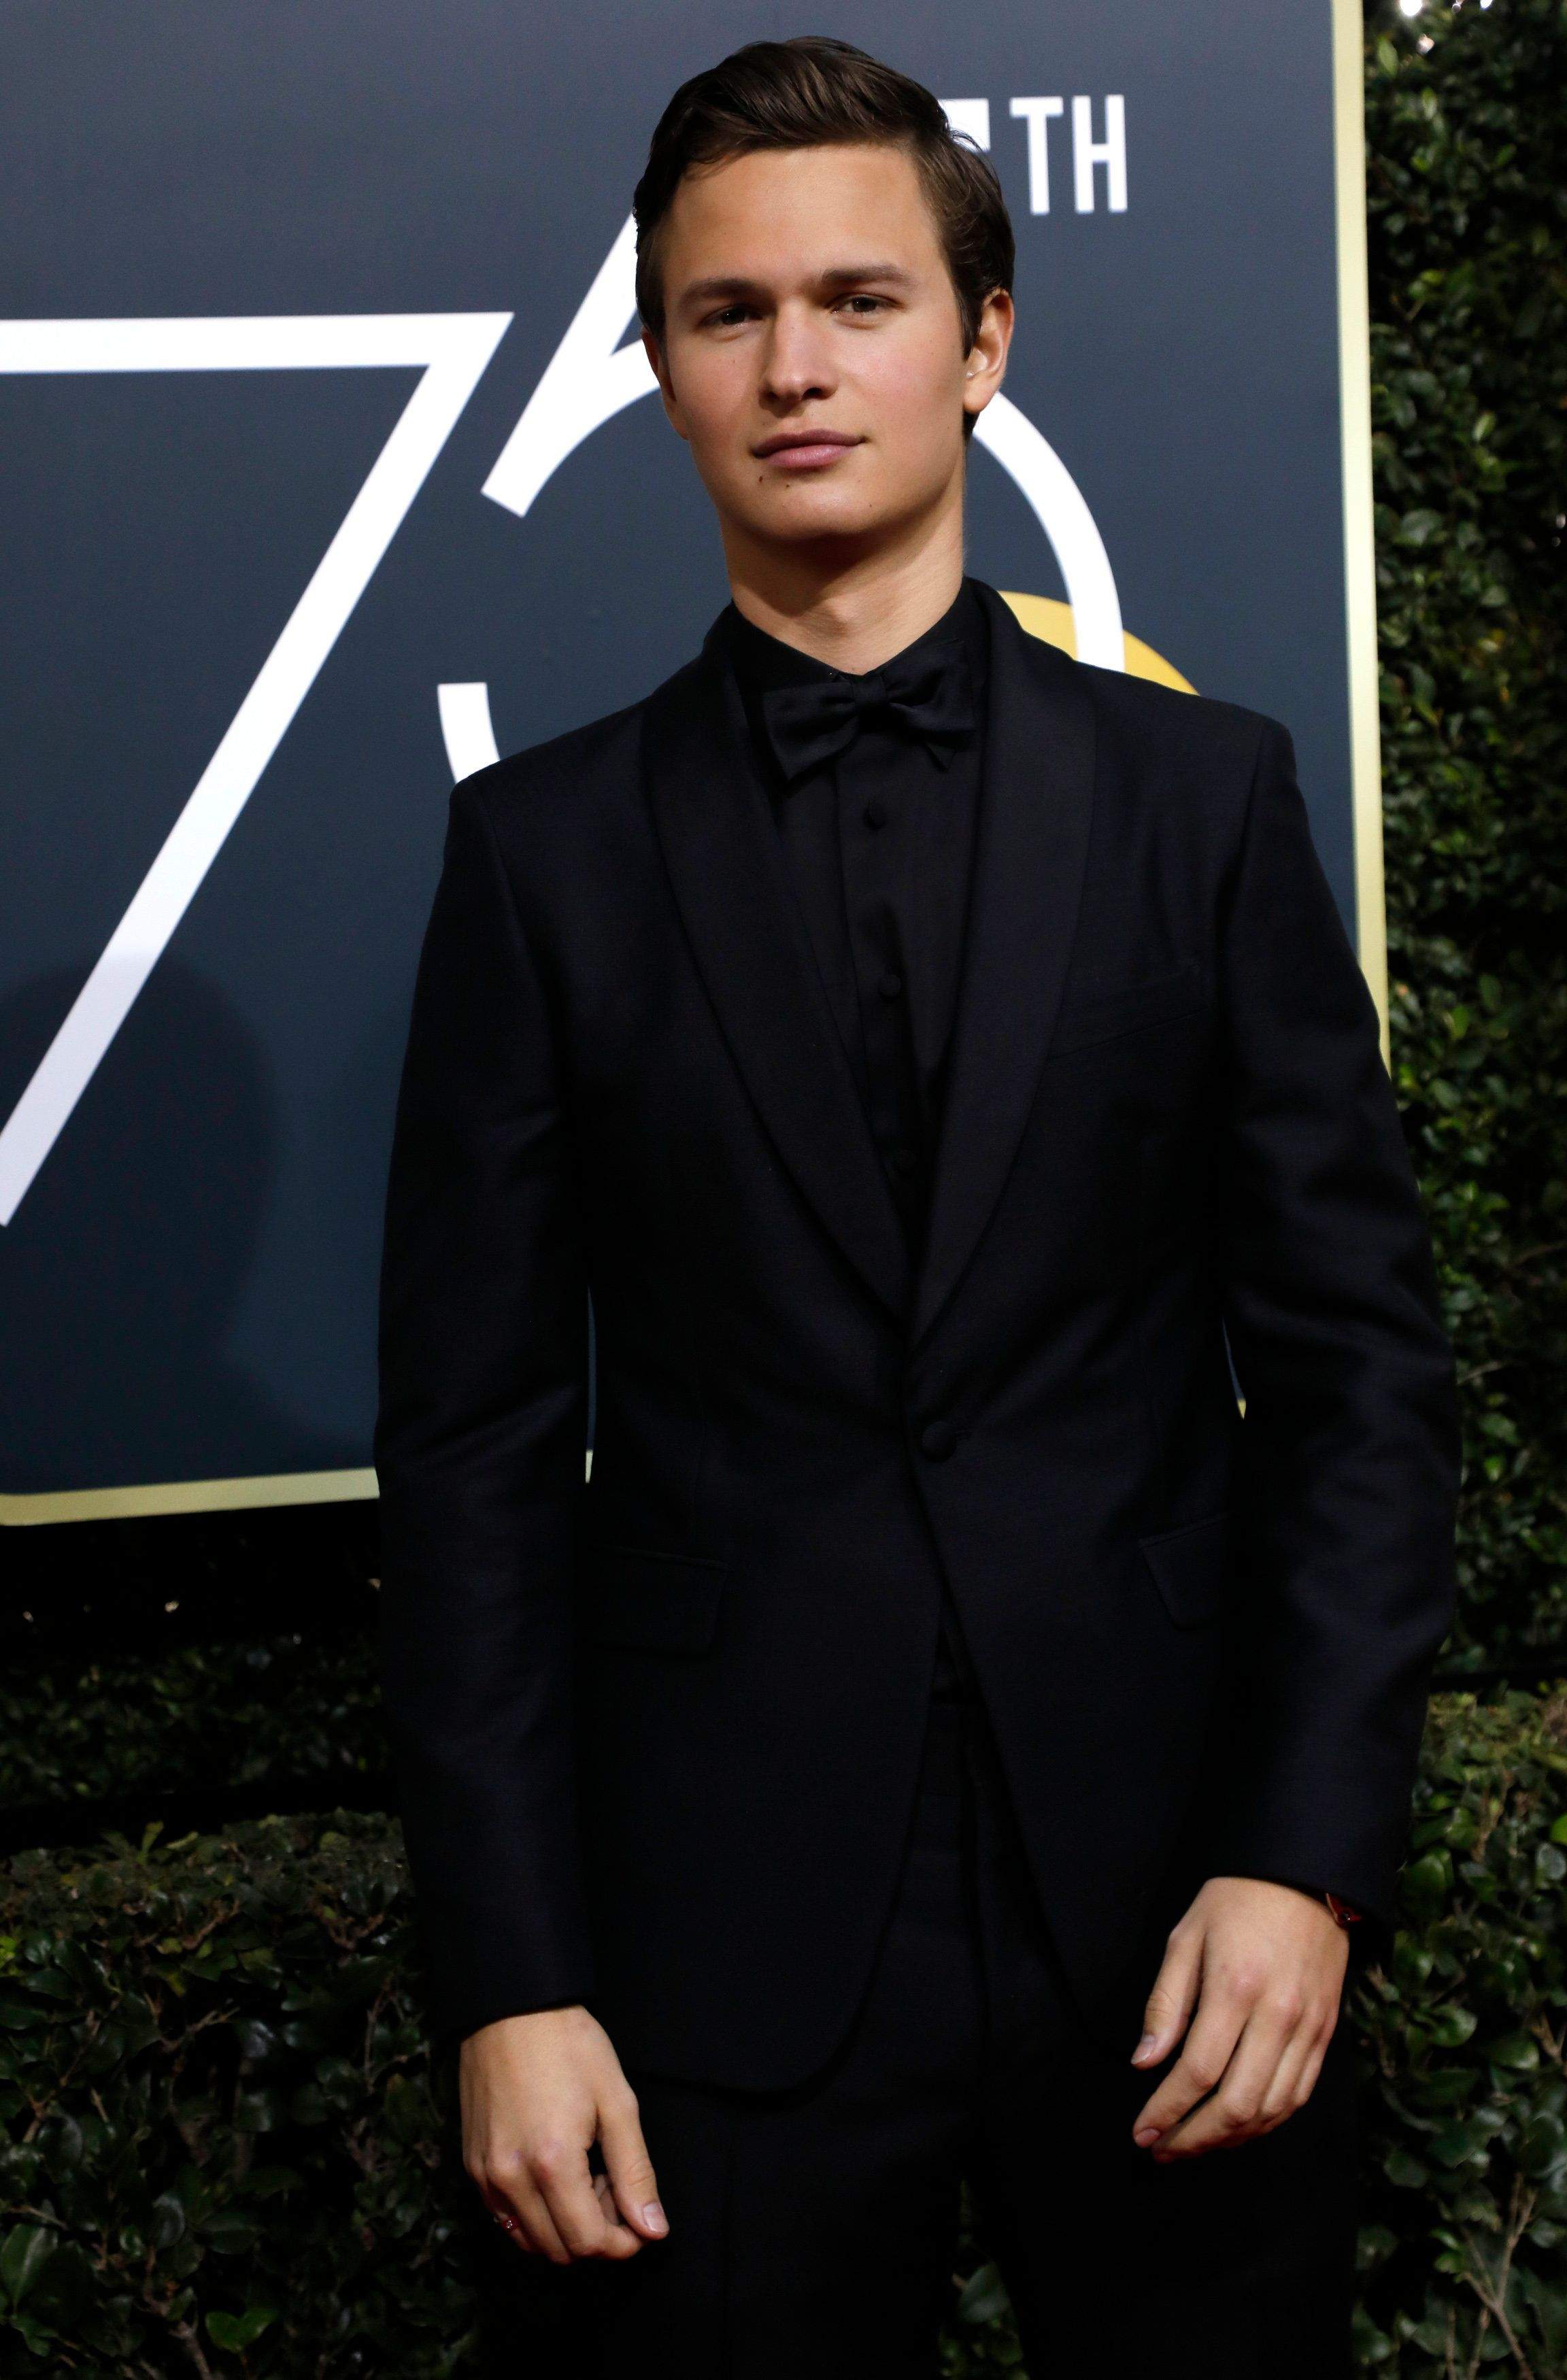 Ansel Elgort To Play Tony In Steven Spielberg's 'West Side Story'